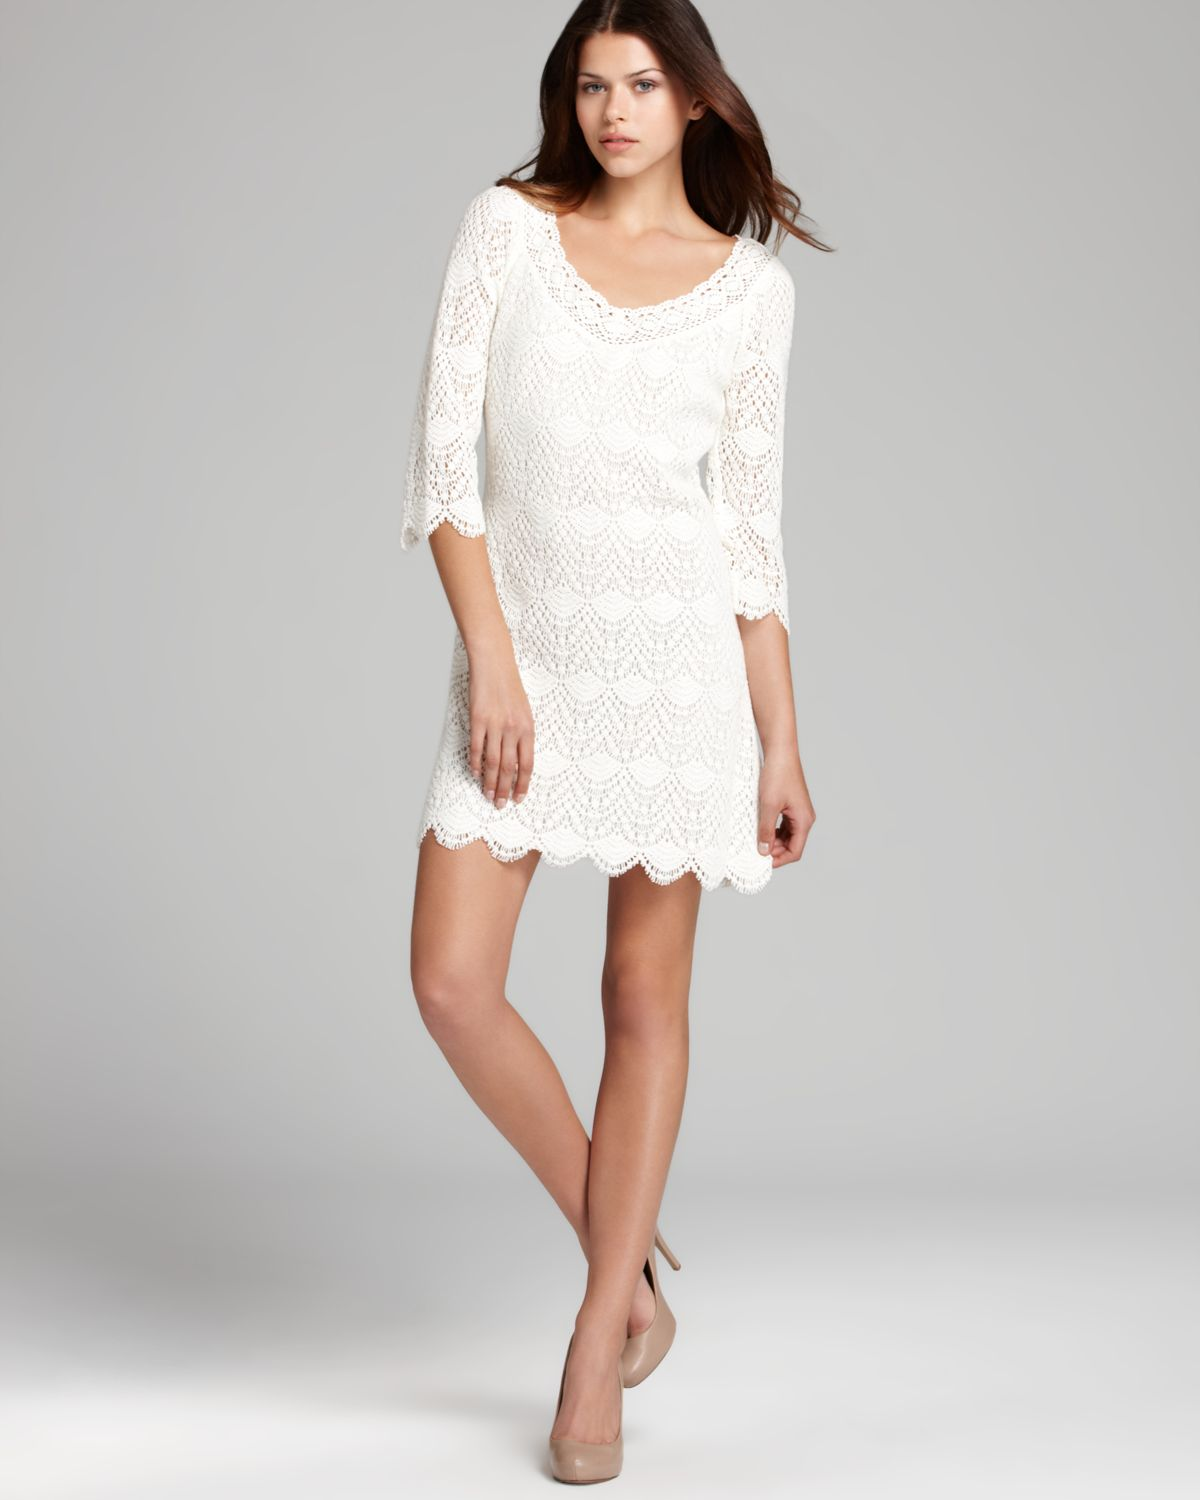 8b2e317d50 Lyst - Juicy Couture Dress Grace Crochet in White